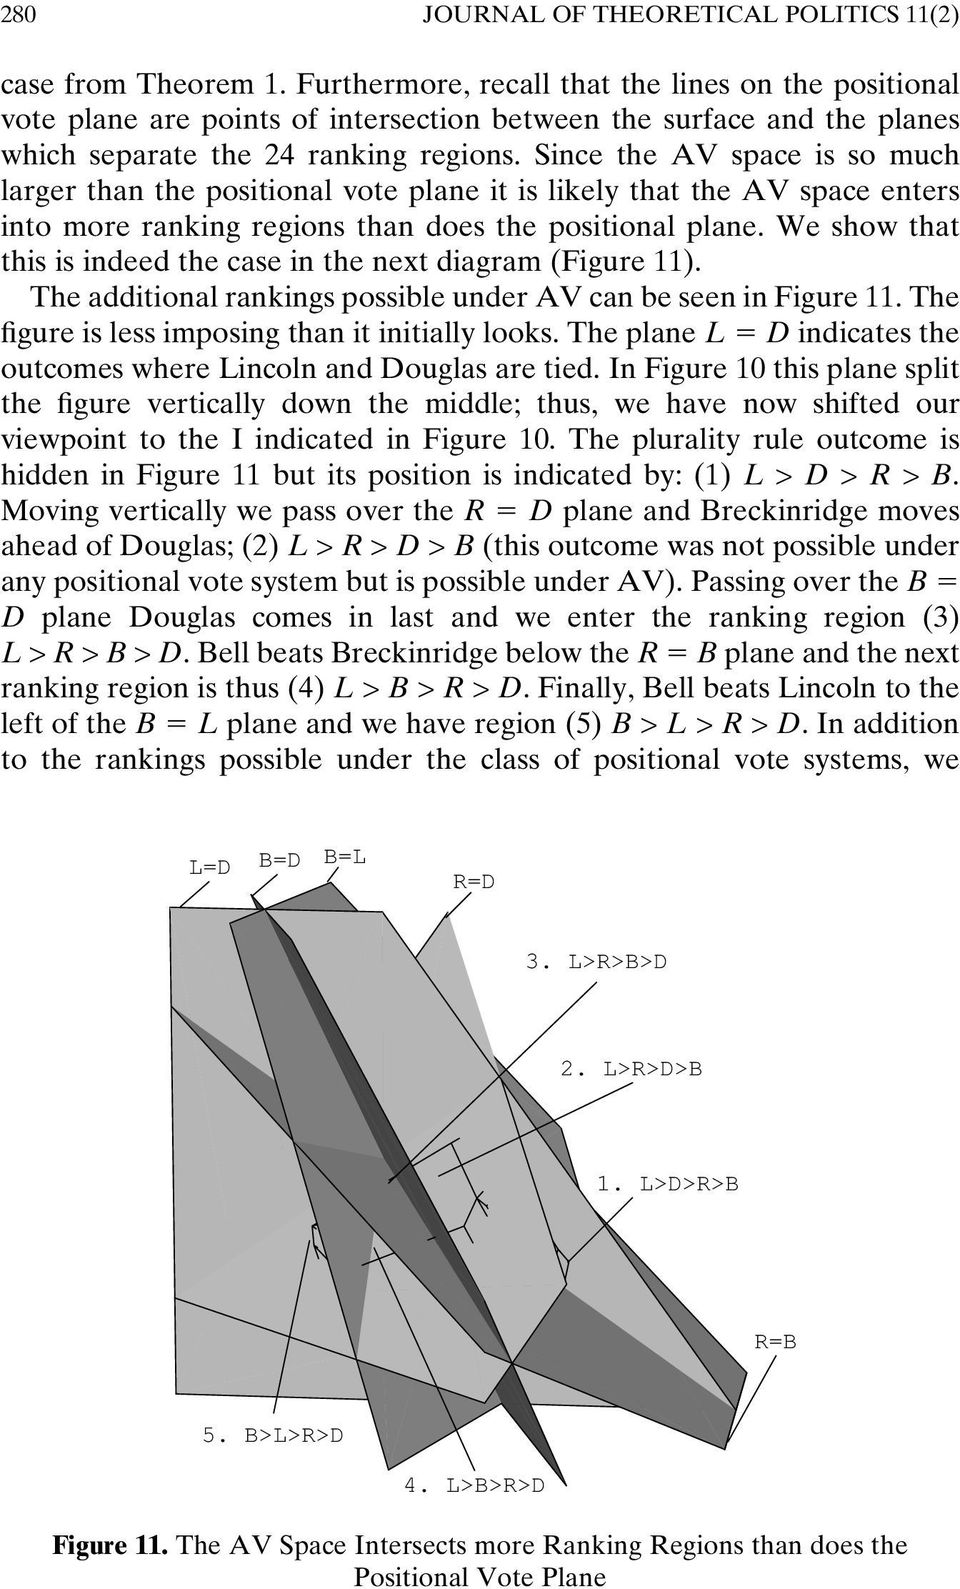 Since the AV space is so much larger than the positional vote plane it is likely that the AV space enters into more ranking regions than does the positional plane.